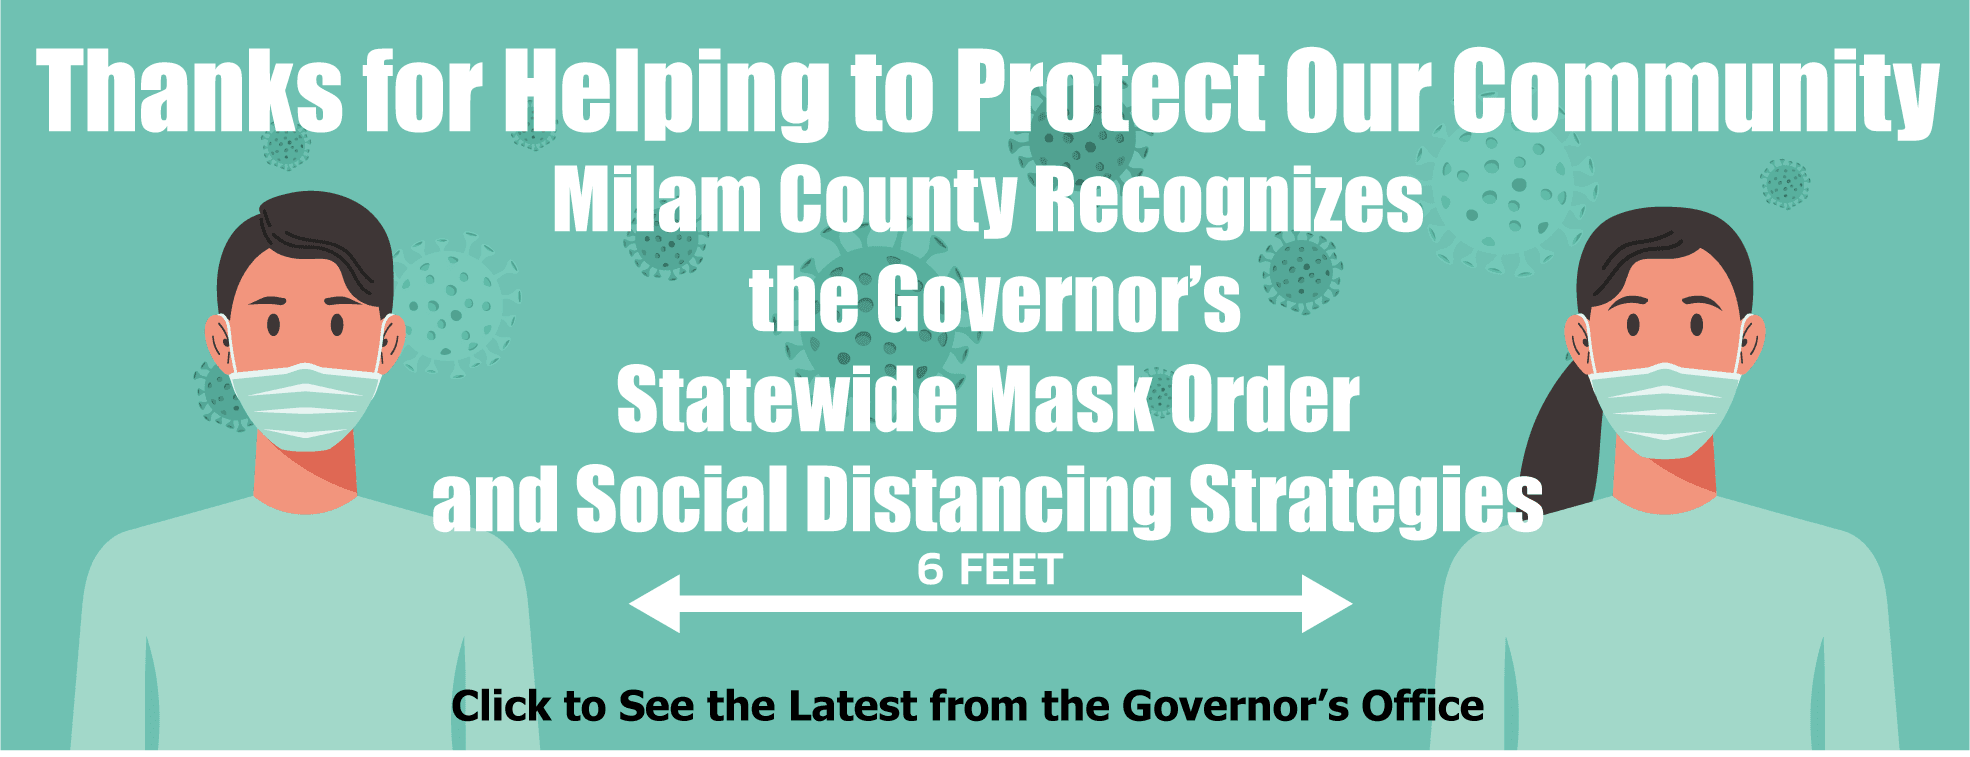 Governor's Mask Order